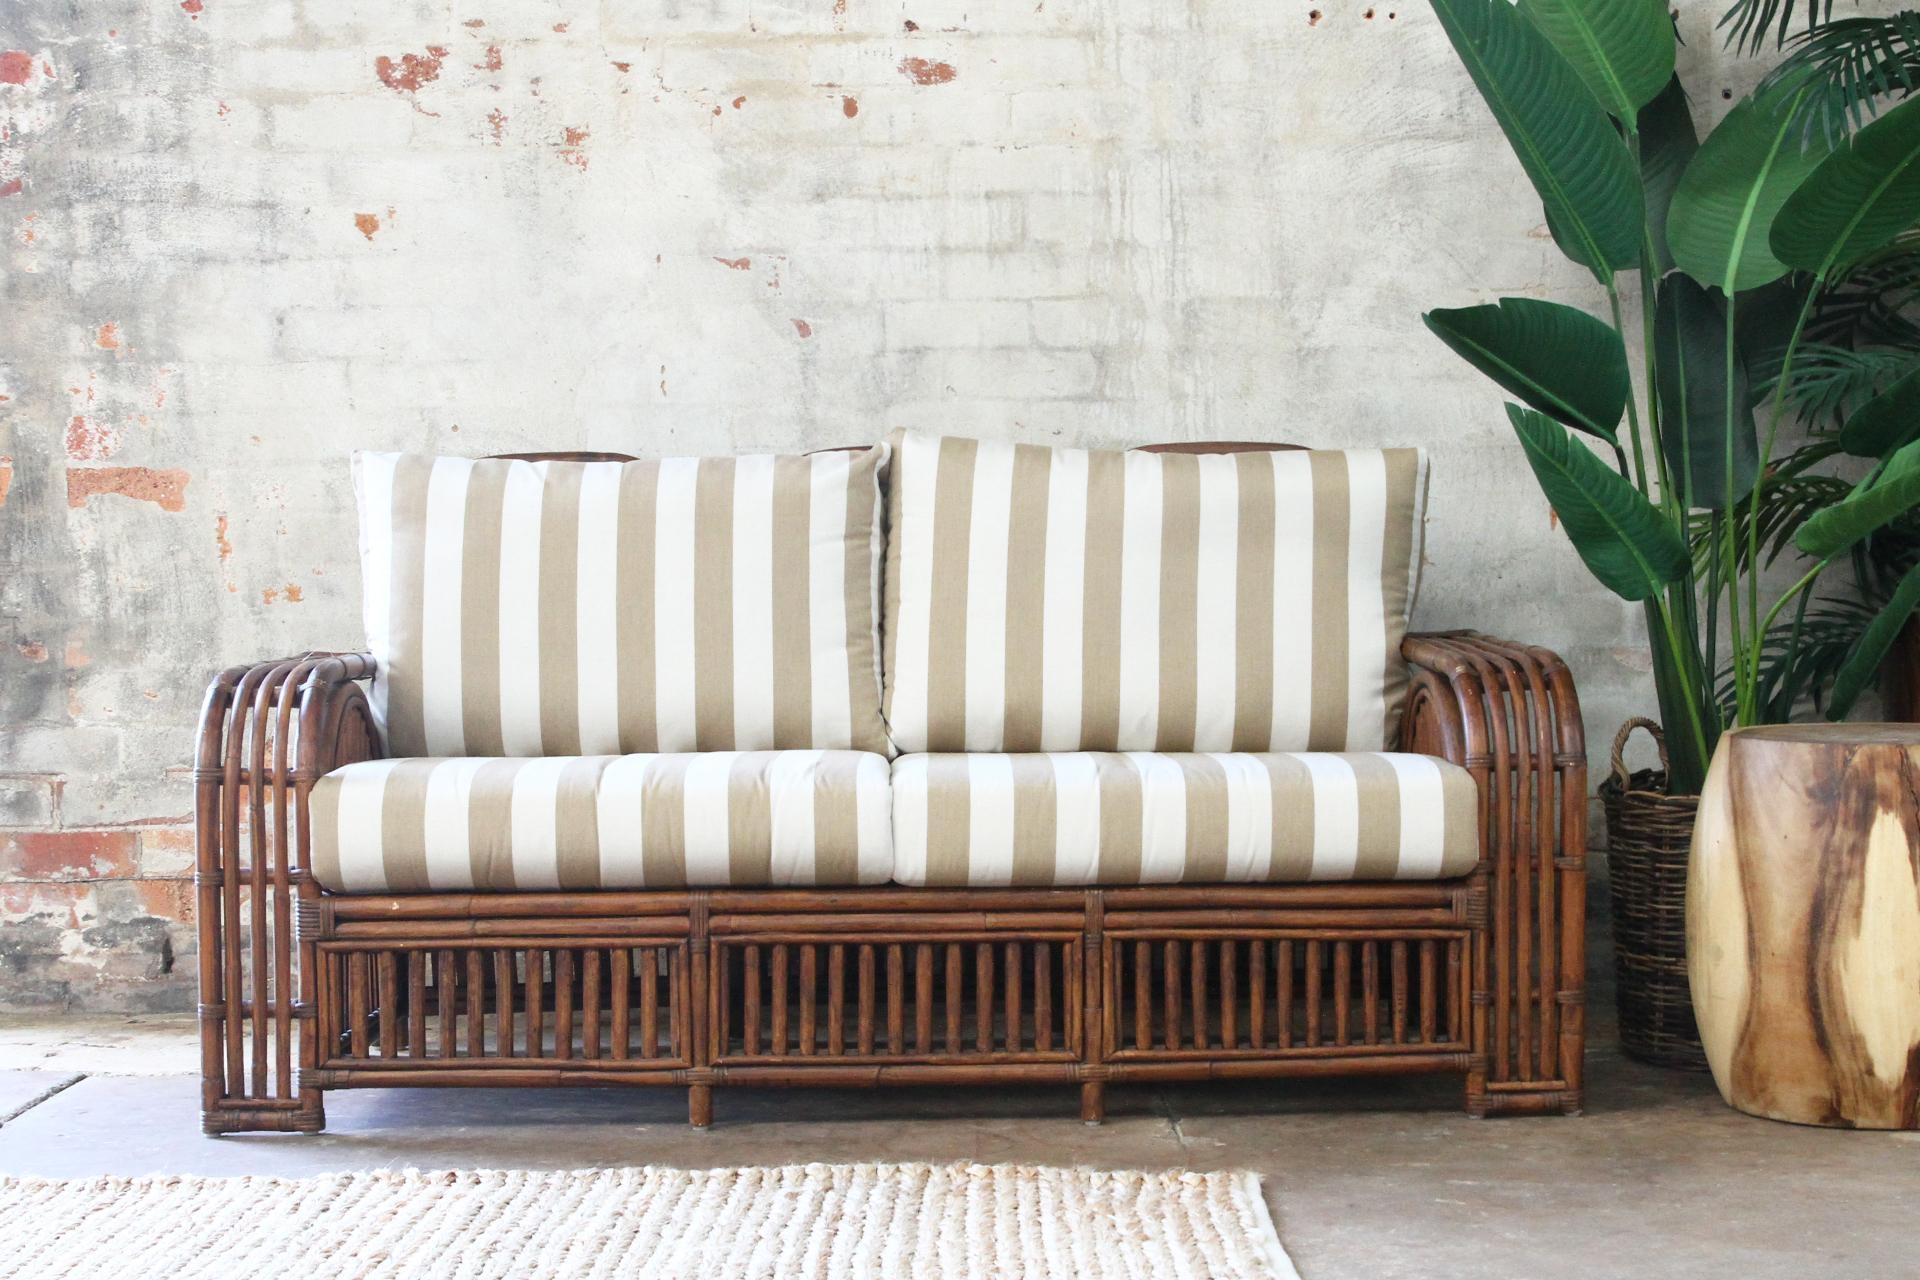 White Cane Furniture | Naturally Cane Rattan And Wicker Furniture Throughout White Cane Sofas (Image 24 of 25)